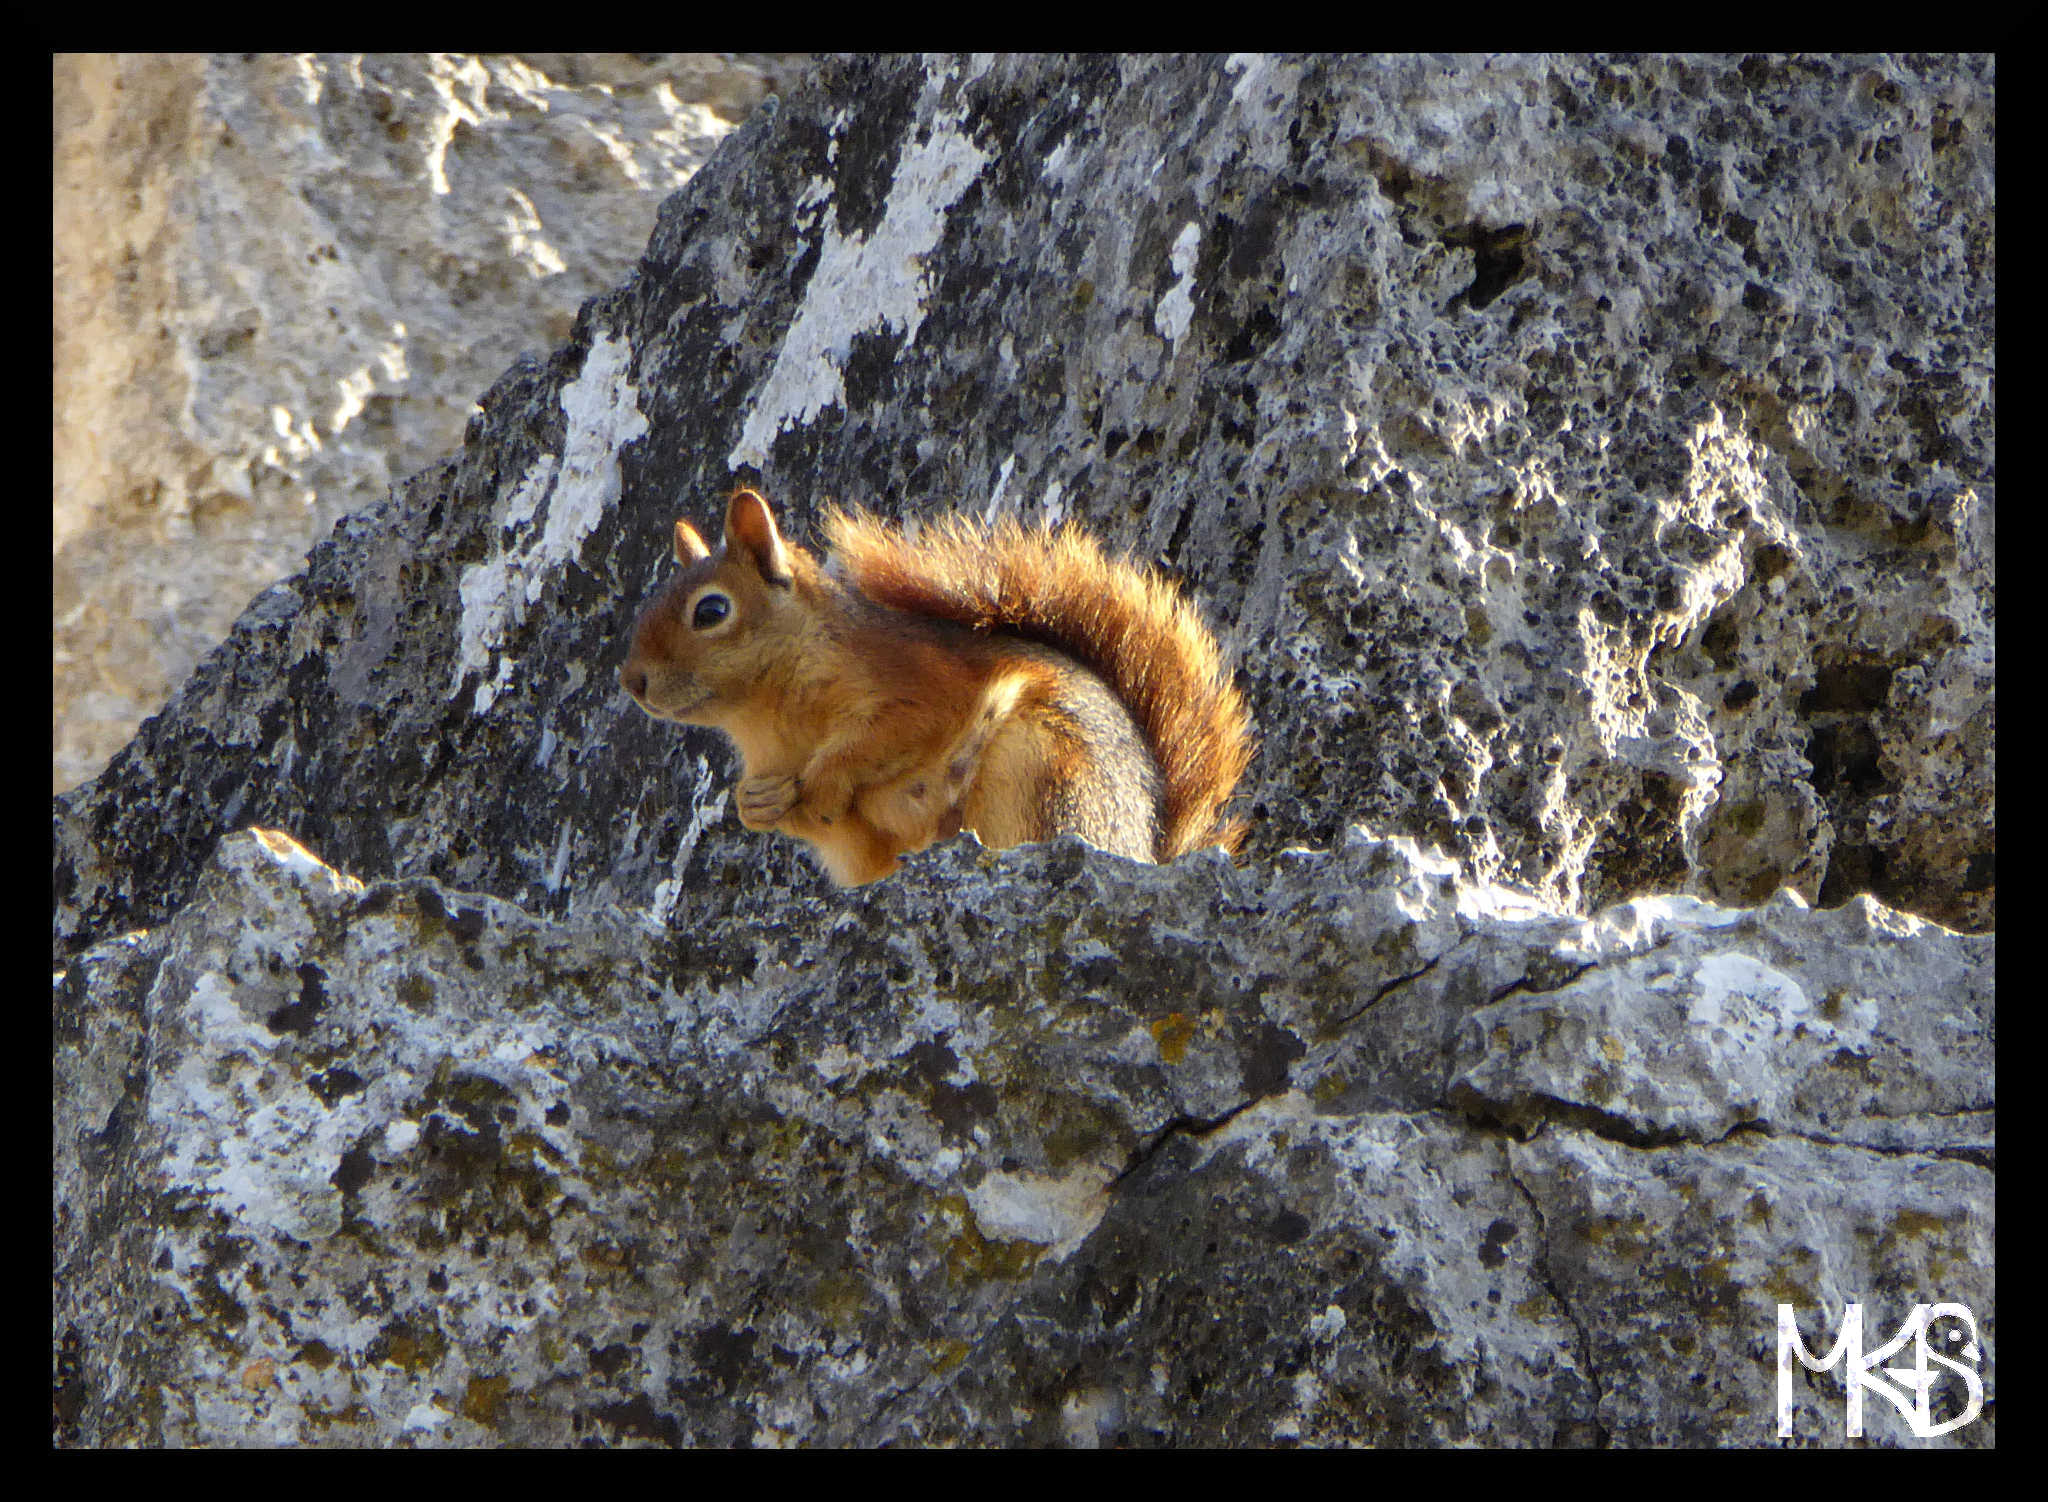 Squirrel in Kaunos, Turkey